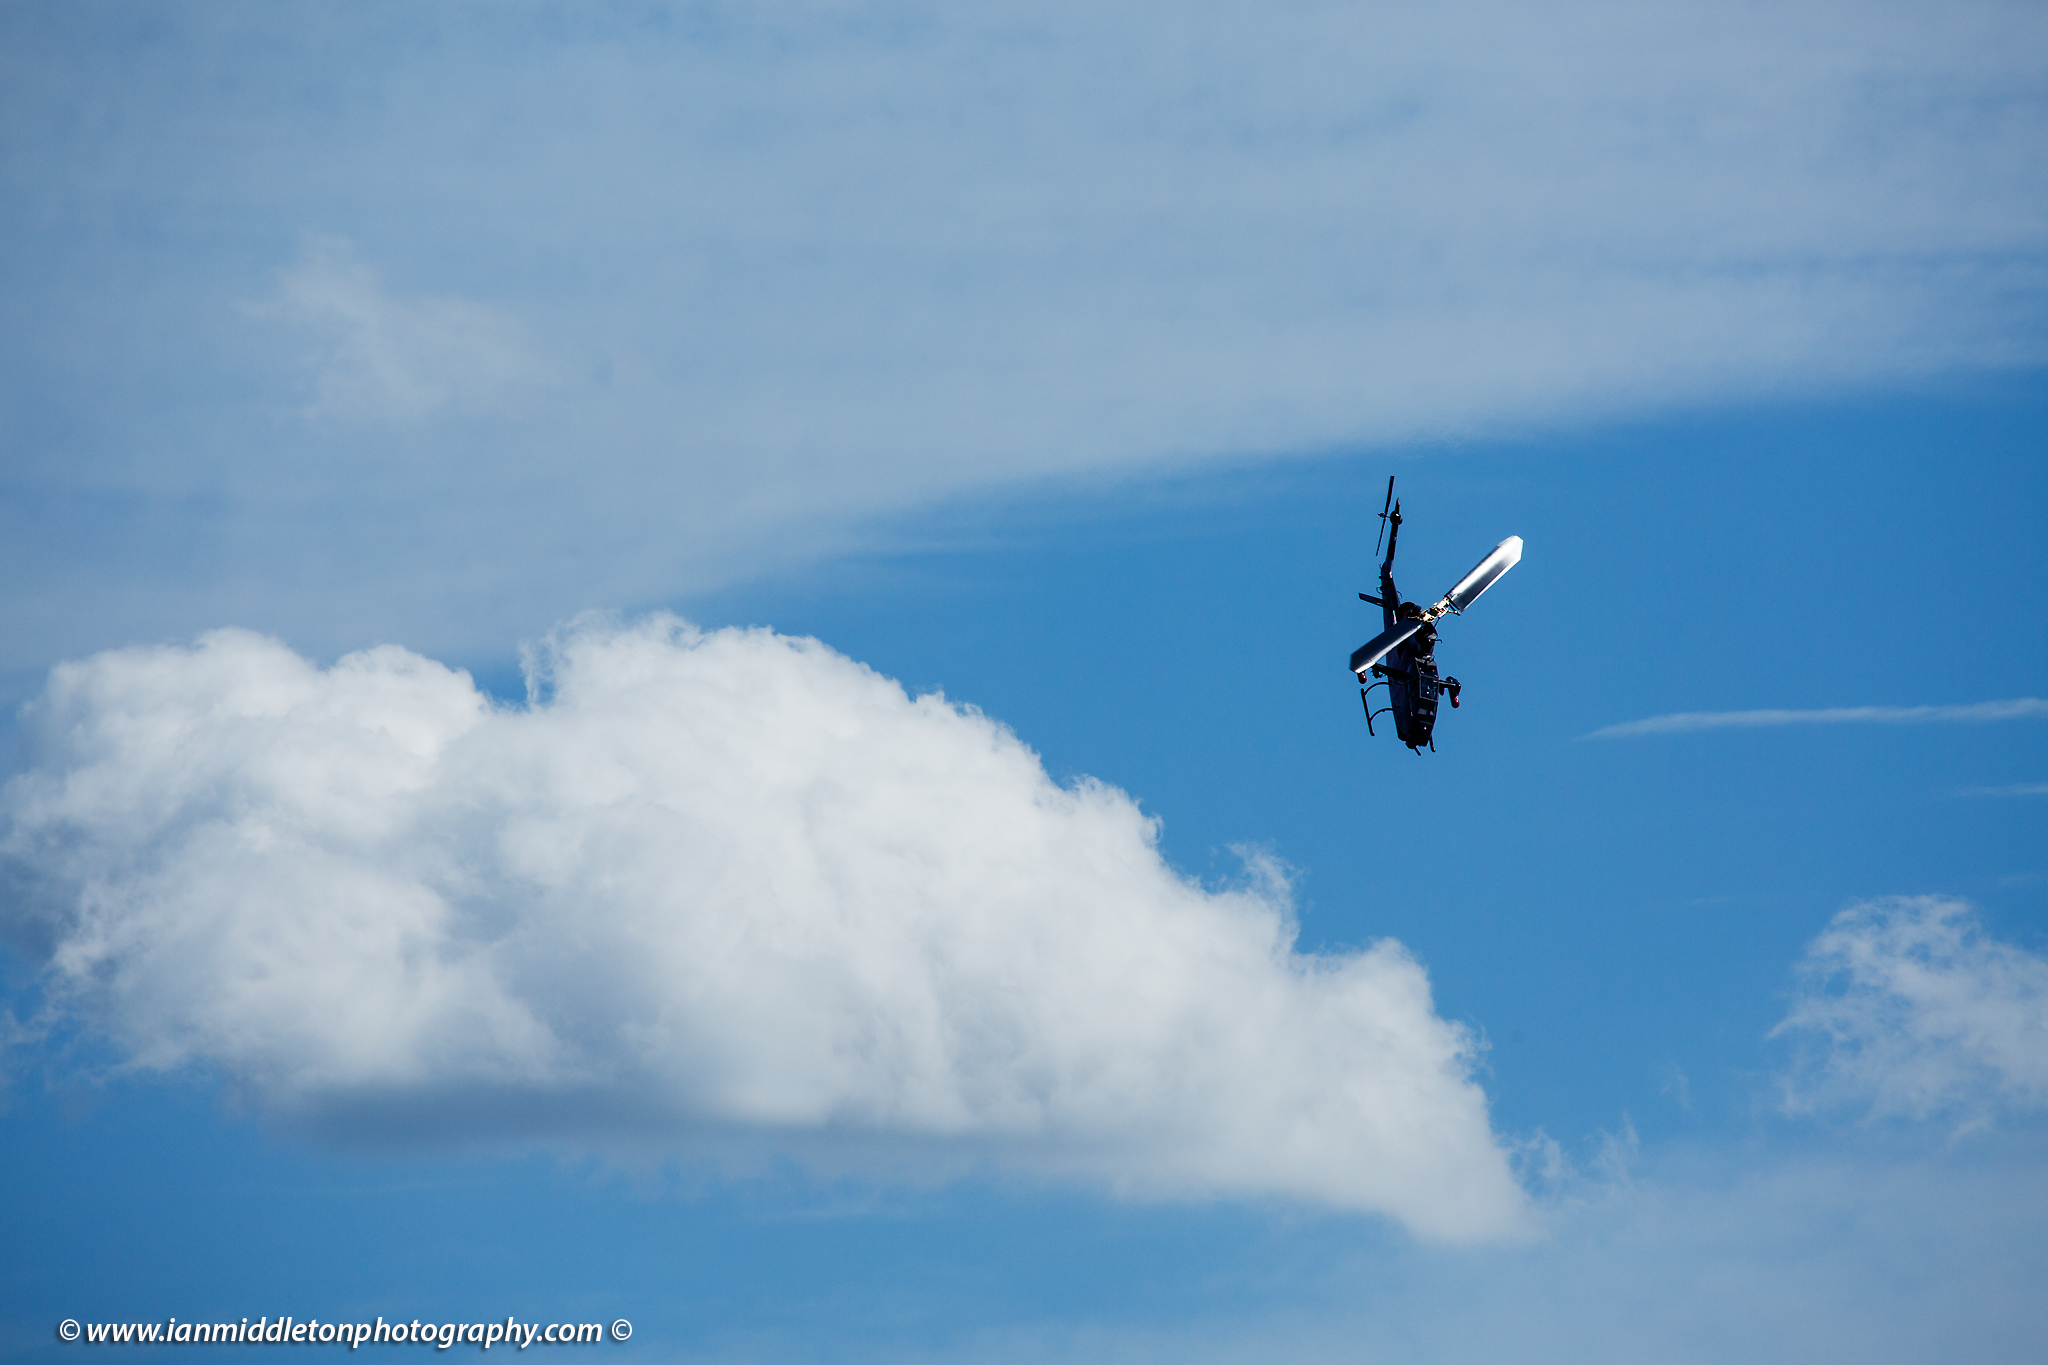 Helicopter acrobatics at the Red Bull open day at Maribor Edvard Rusjan Airport, Slovenia